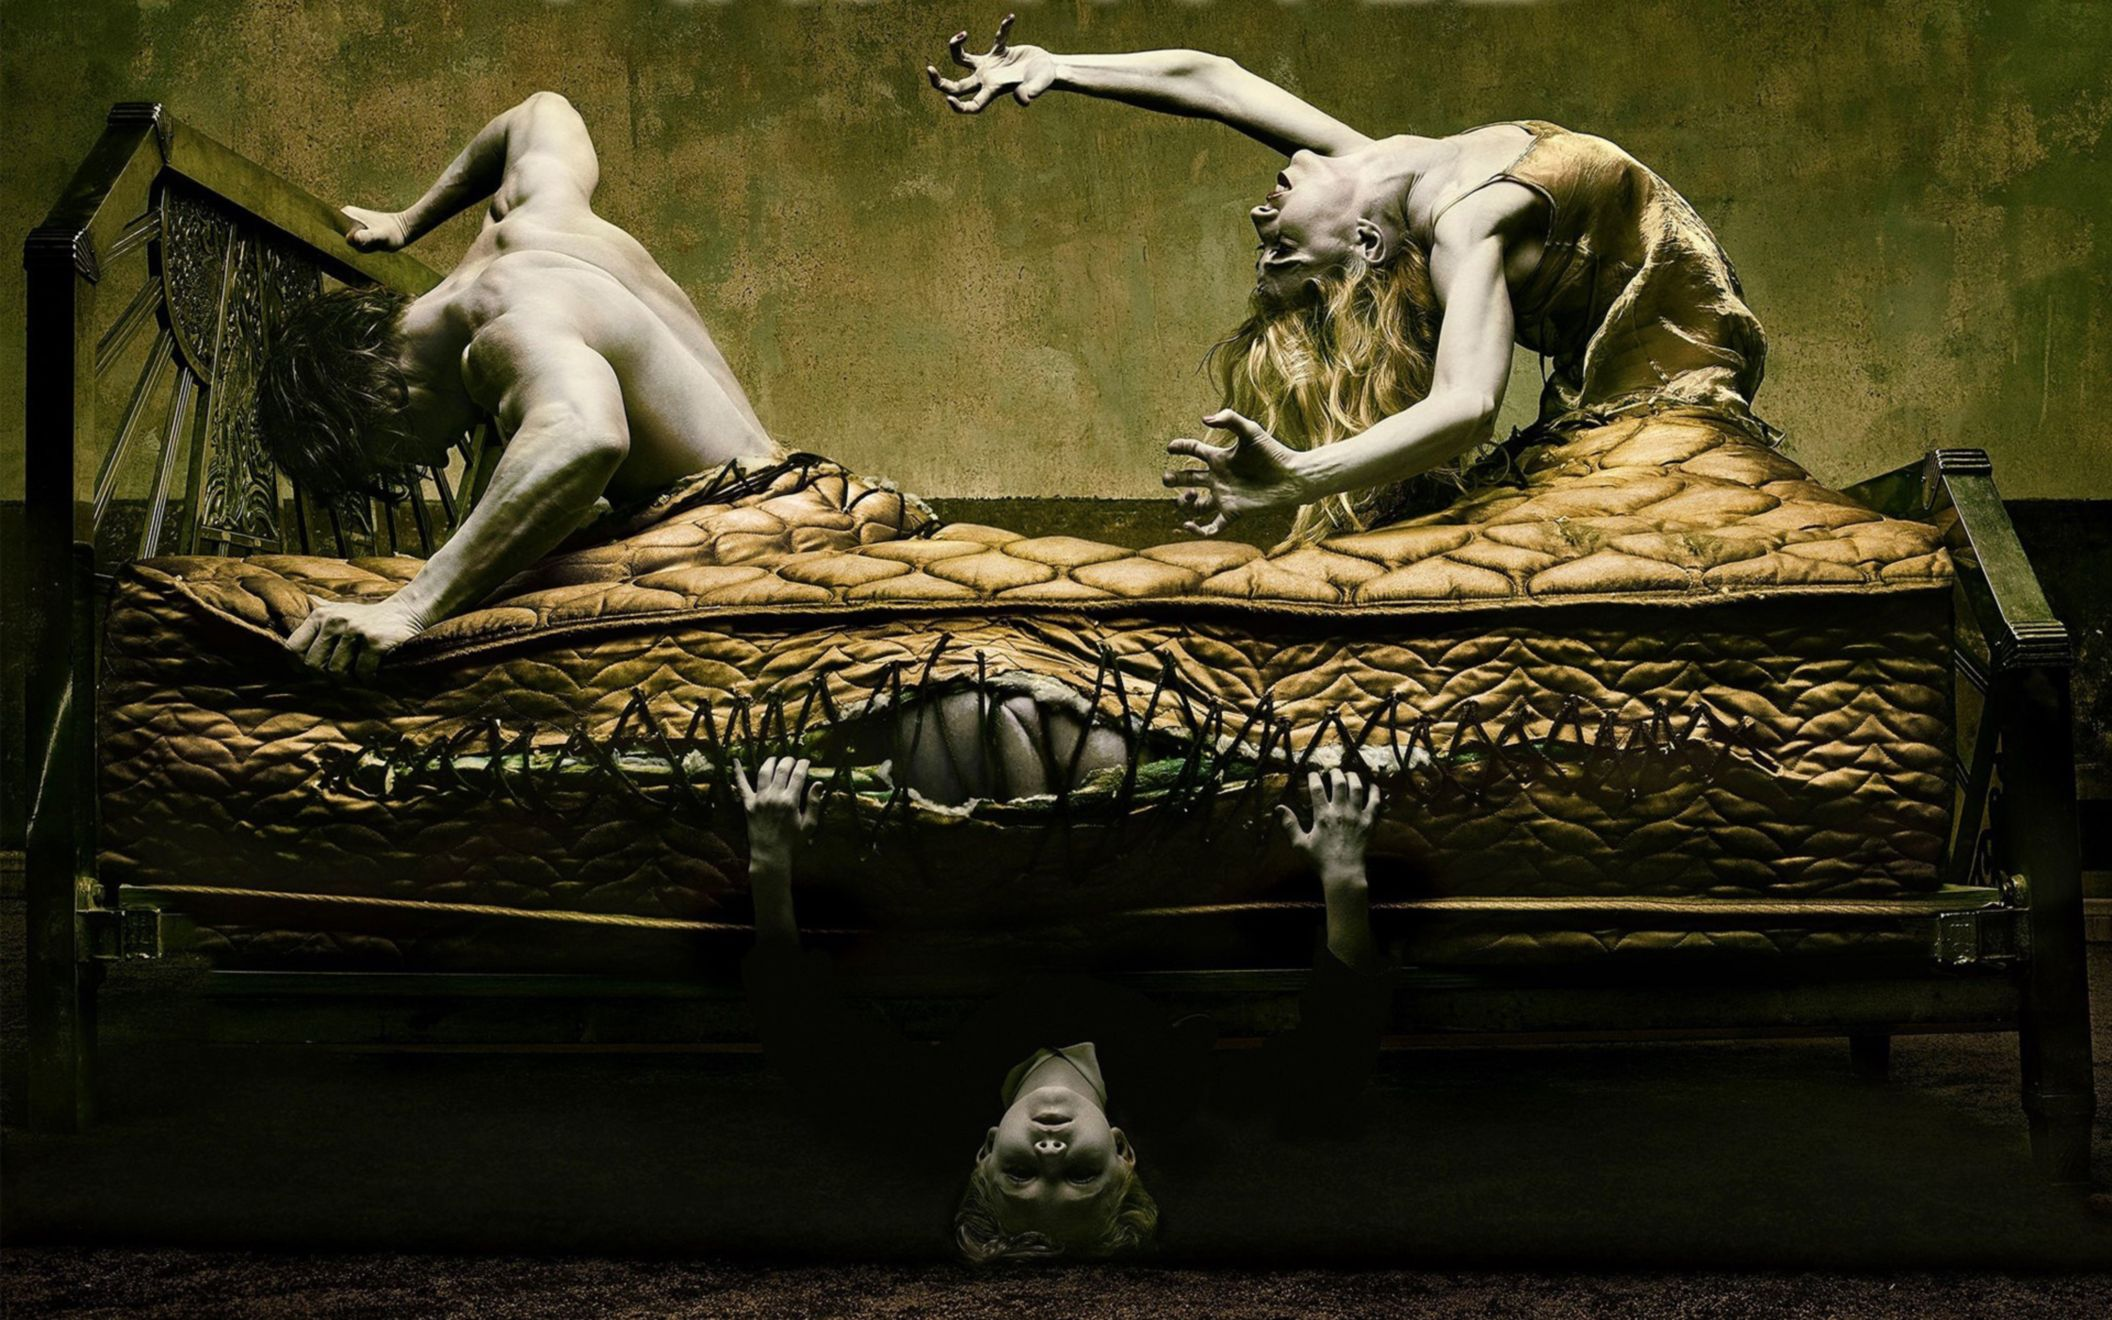 Download free HD American Horror Story Season 5 Wide Wallpaper, image